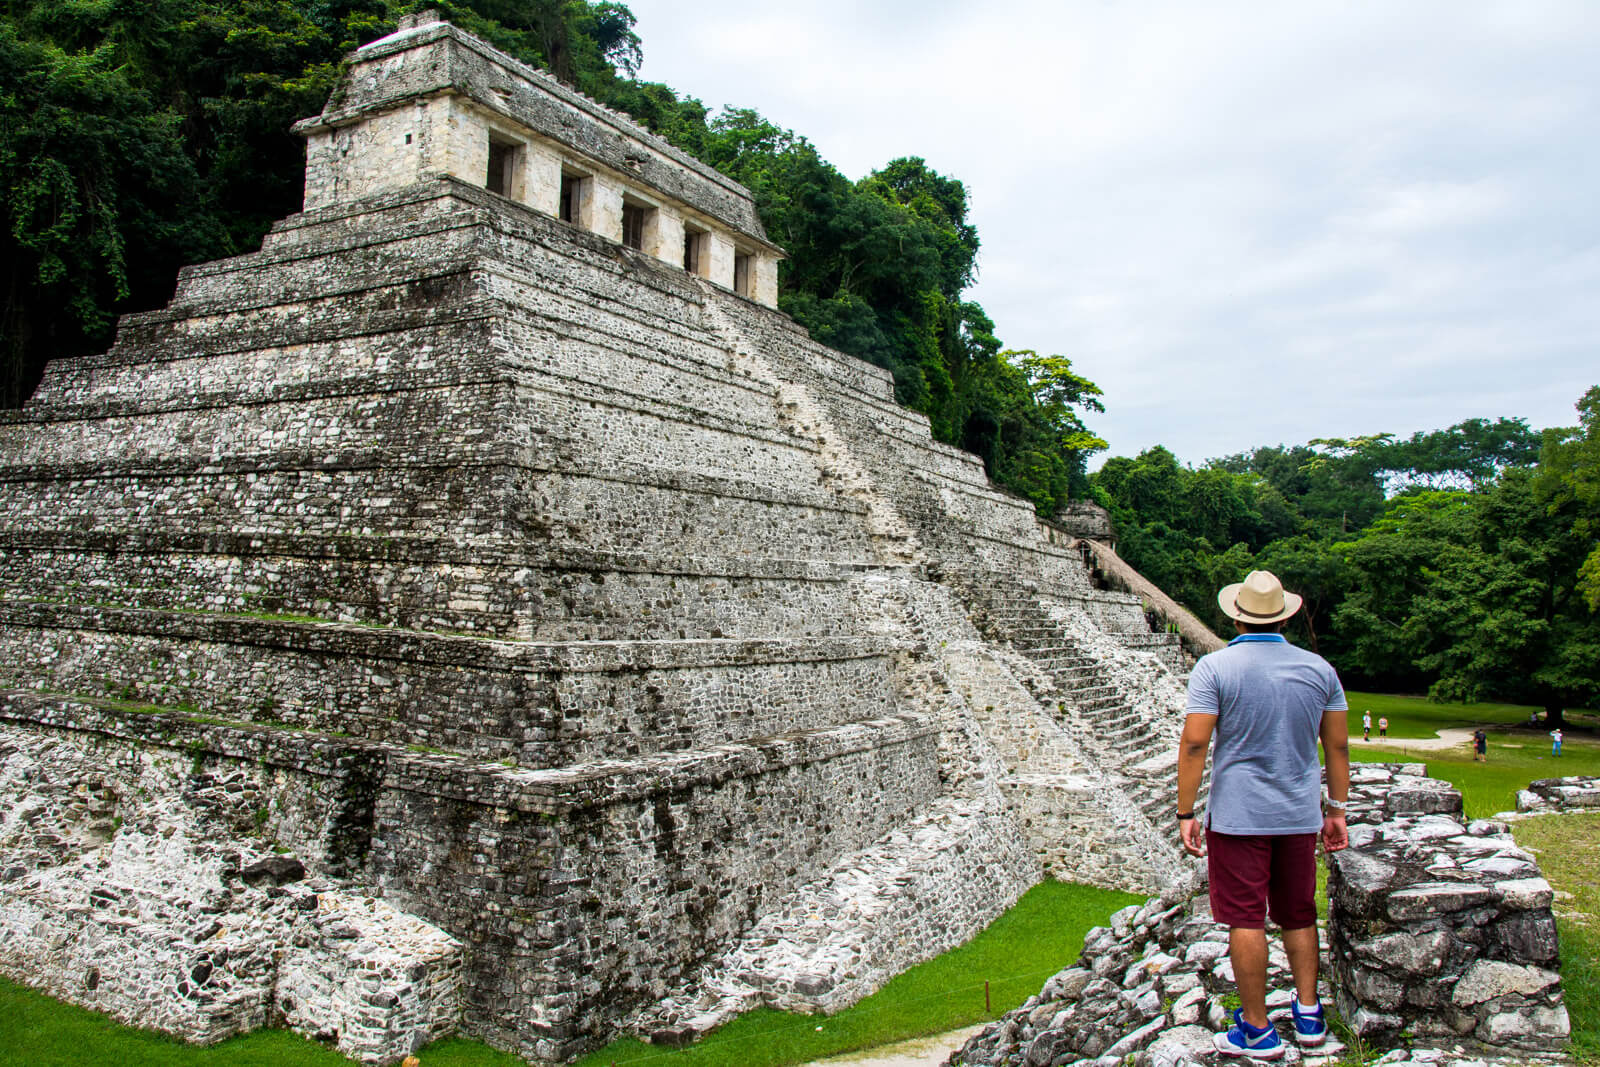 Contemplating the Pakal Palenque Pyramd